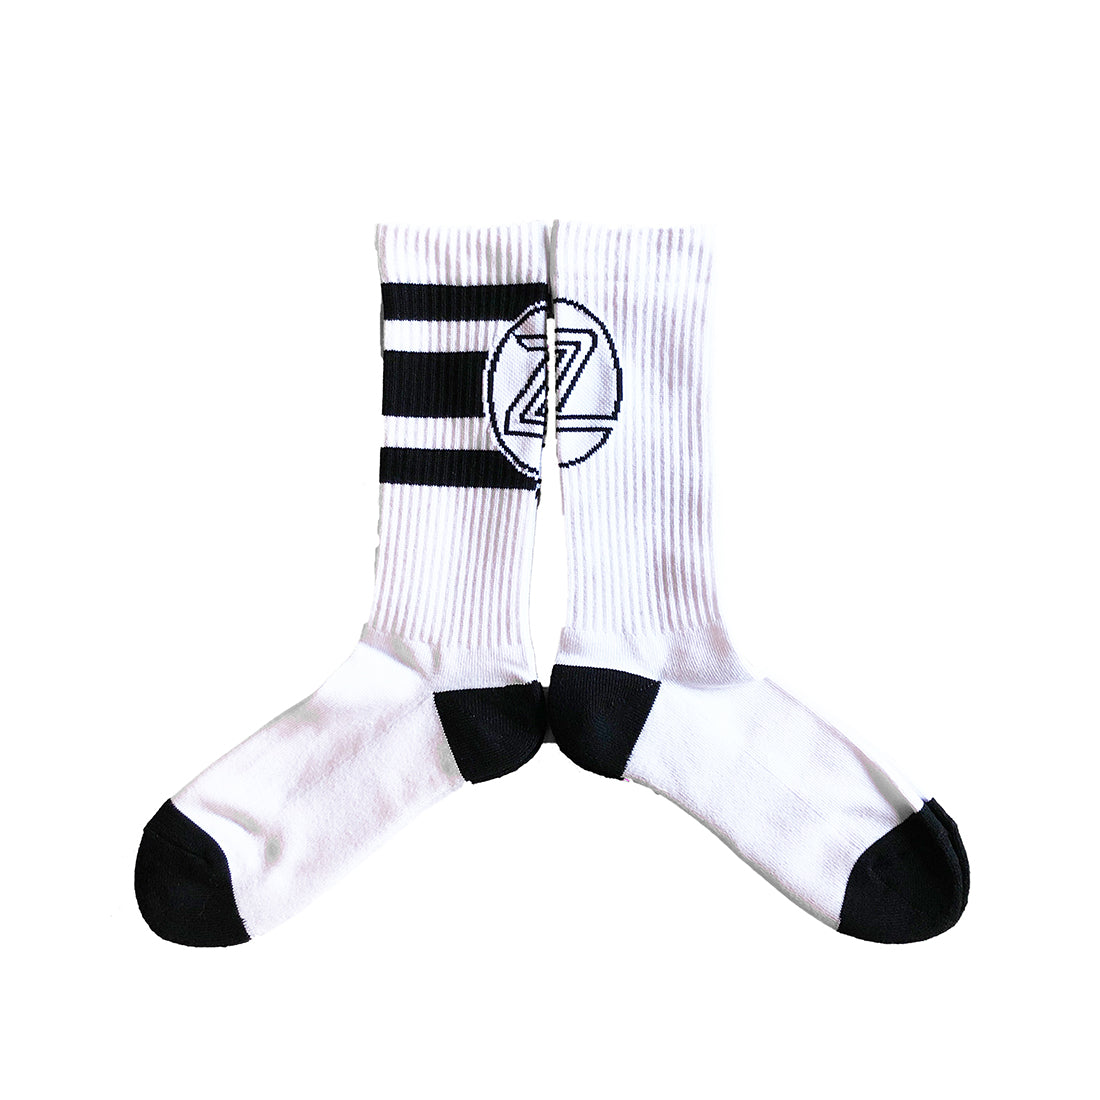 Z-FLEX JAPAN u9650u5b9a u30bdu30c3u30afu30b9 2u8db3u30bbu30c3u30c8 Z-FLEX JAPAN Limited SOCKS 2PAIRS SET-Z-FLEX SKATEBOARDS JAPAN OFFICIALu3010u516cu5f0fu901au8ca9u3011